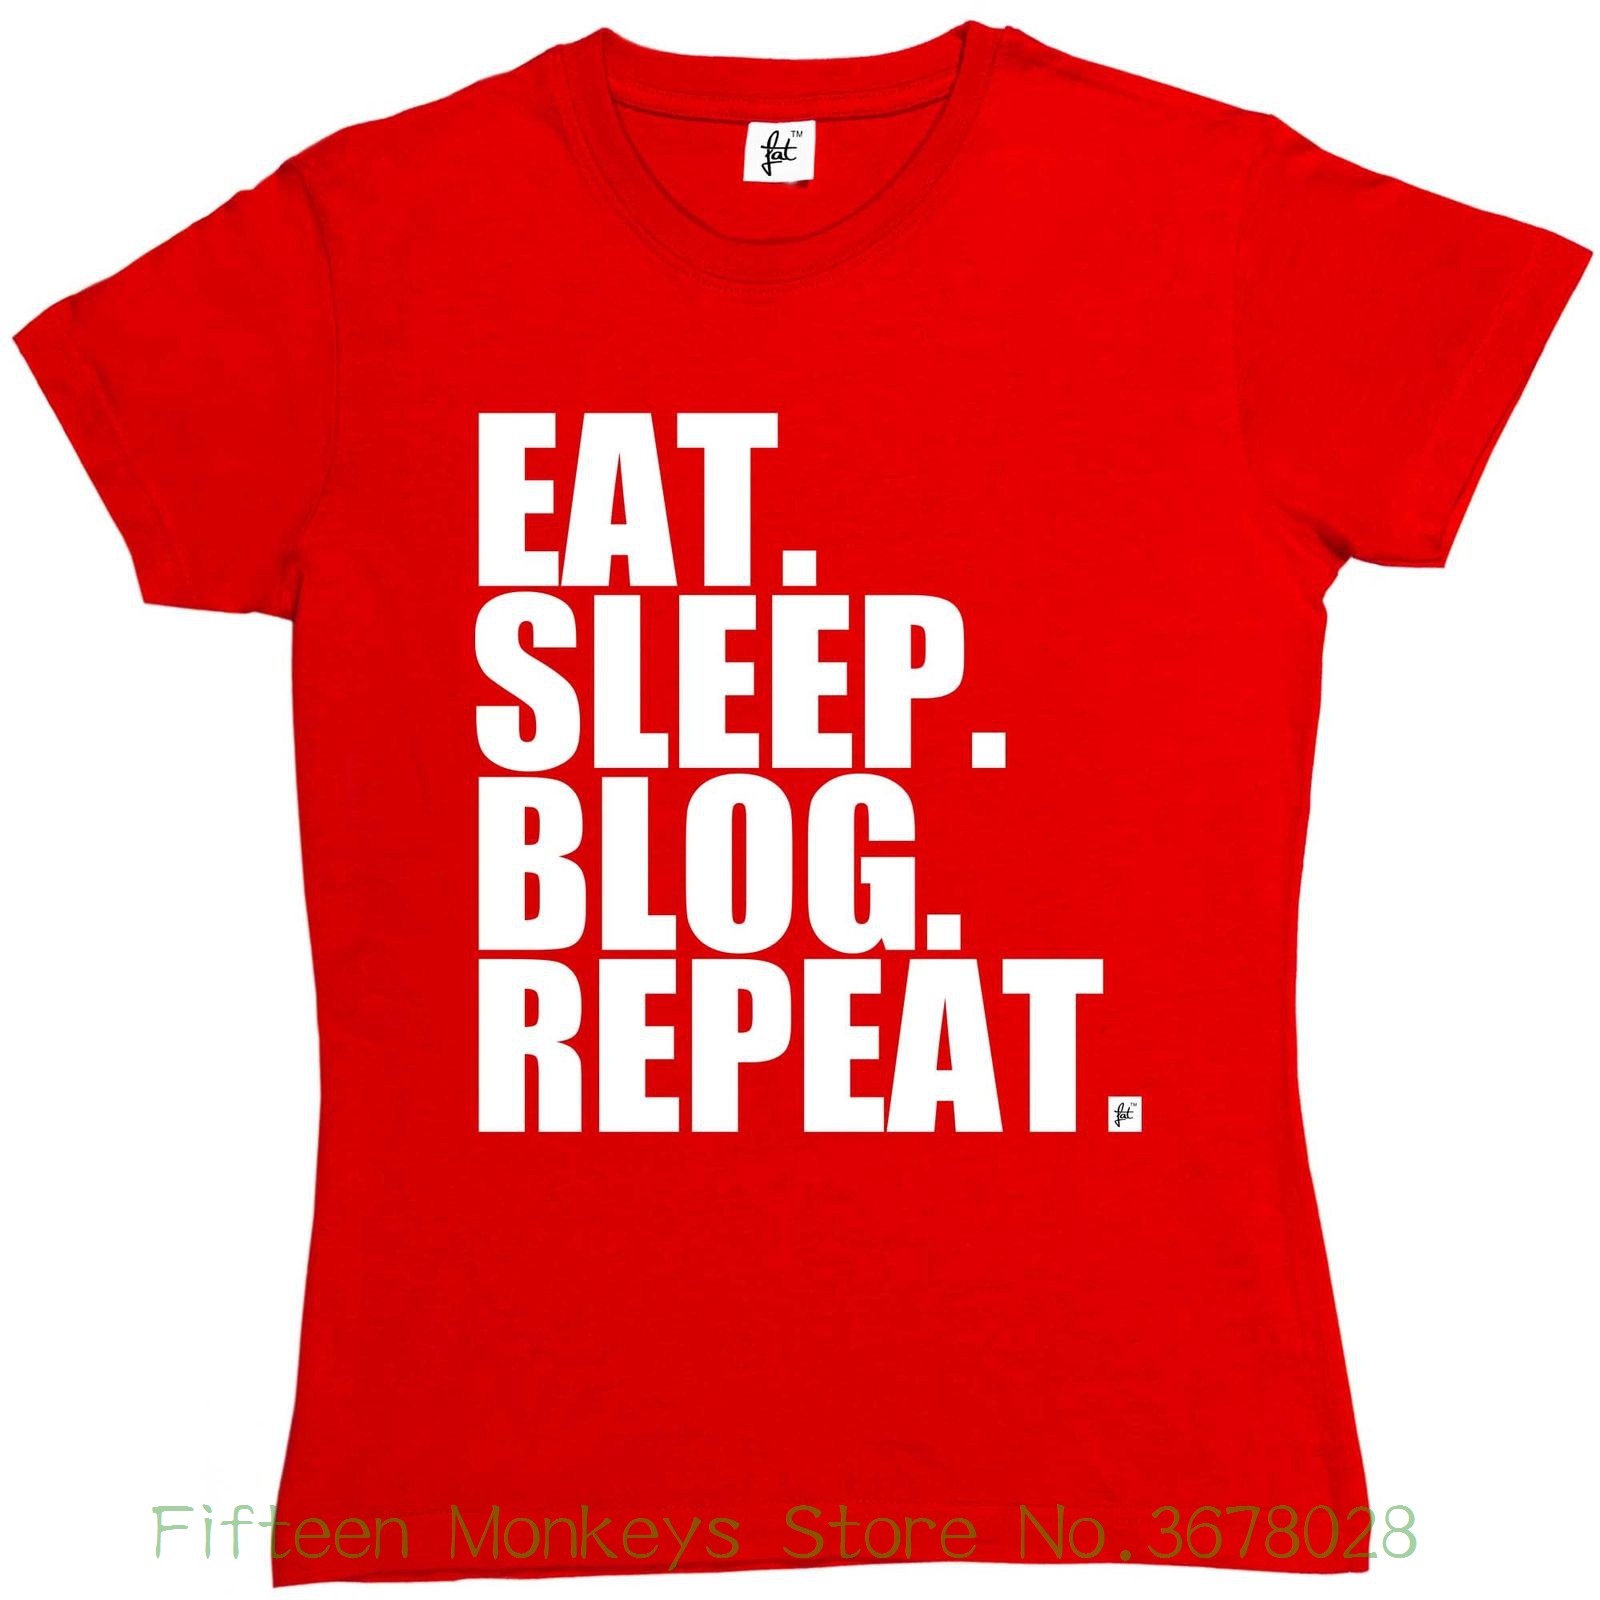 Women's Tee Eat. Sleep. Blog. Repeat. Social Blogger Womens Ladies T-shirt Print Female Fashion T Shirt girls image